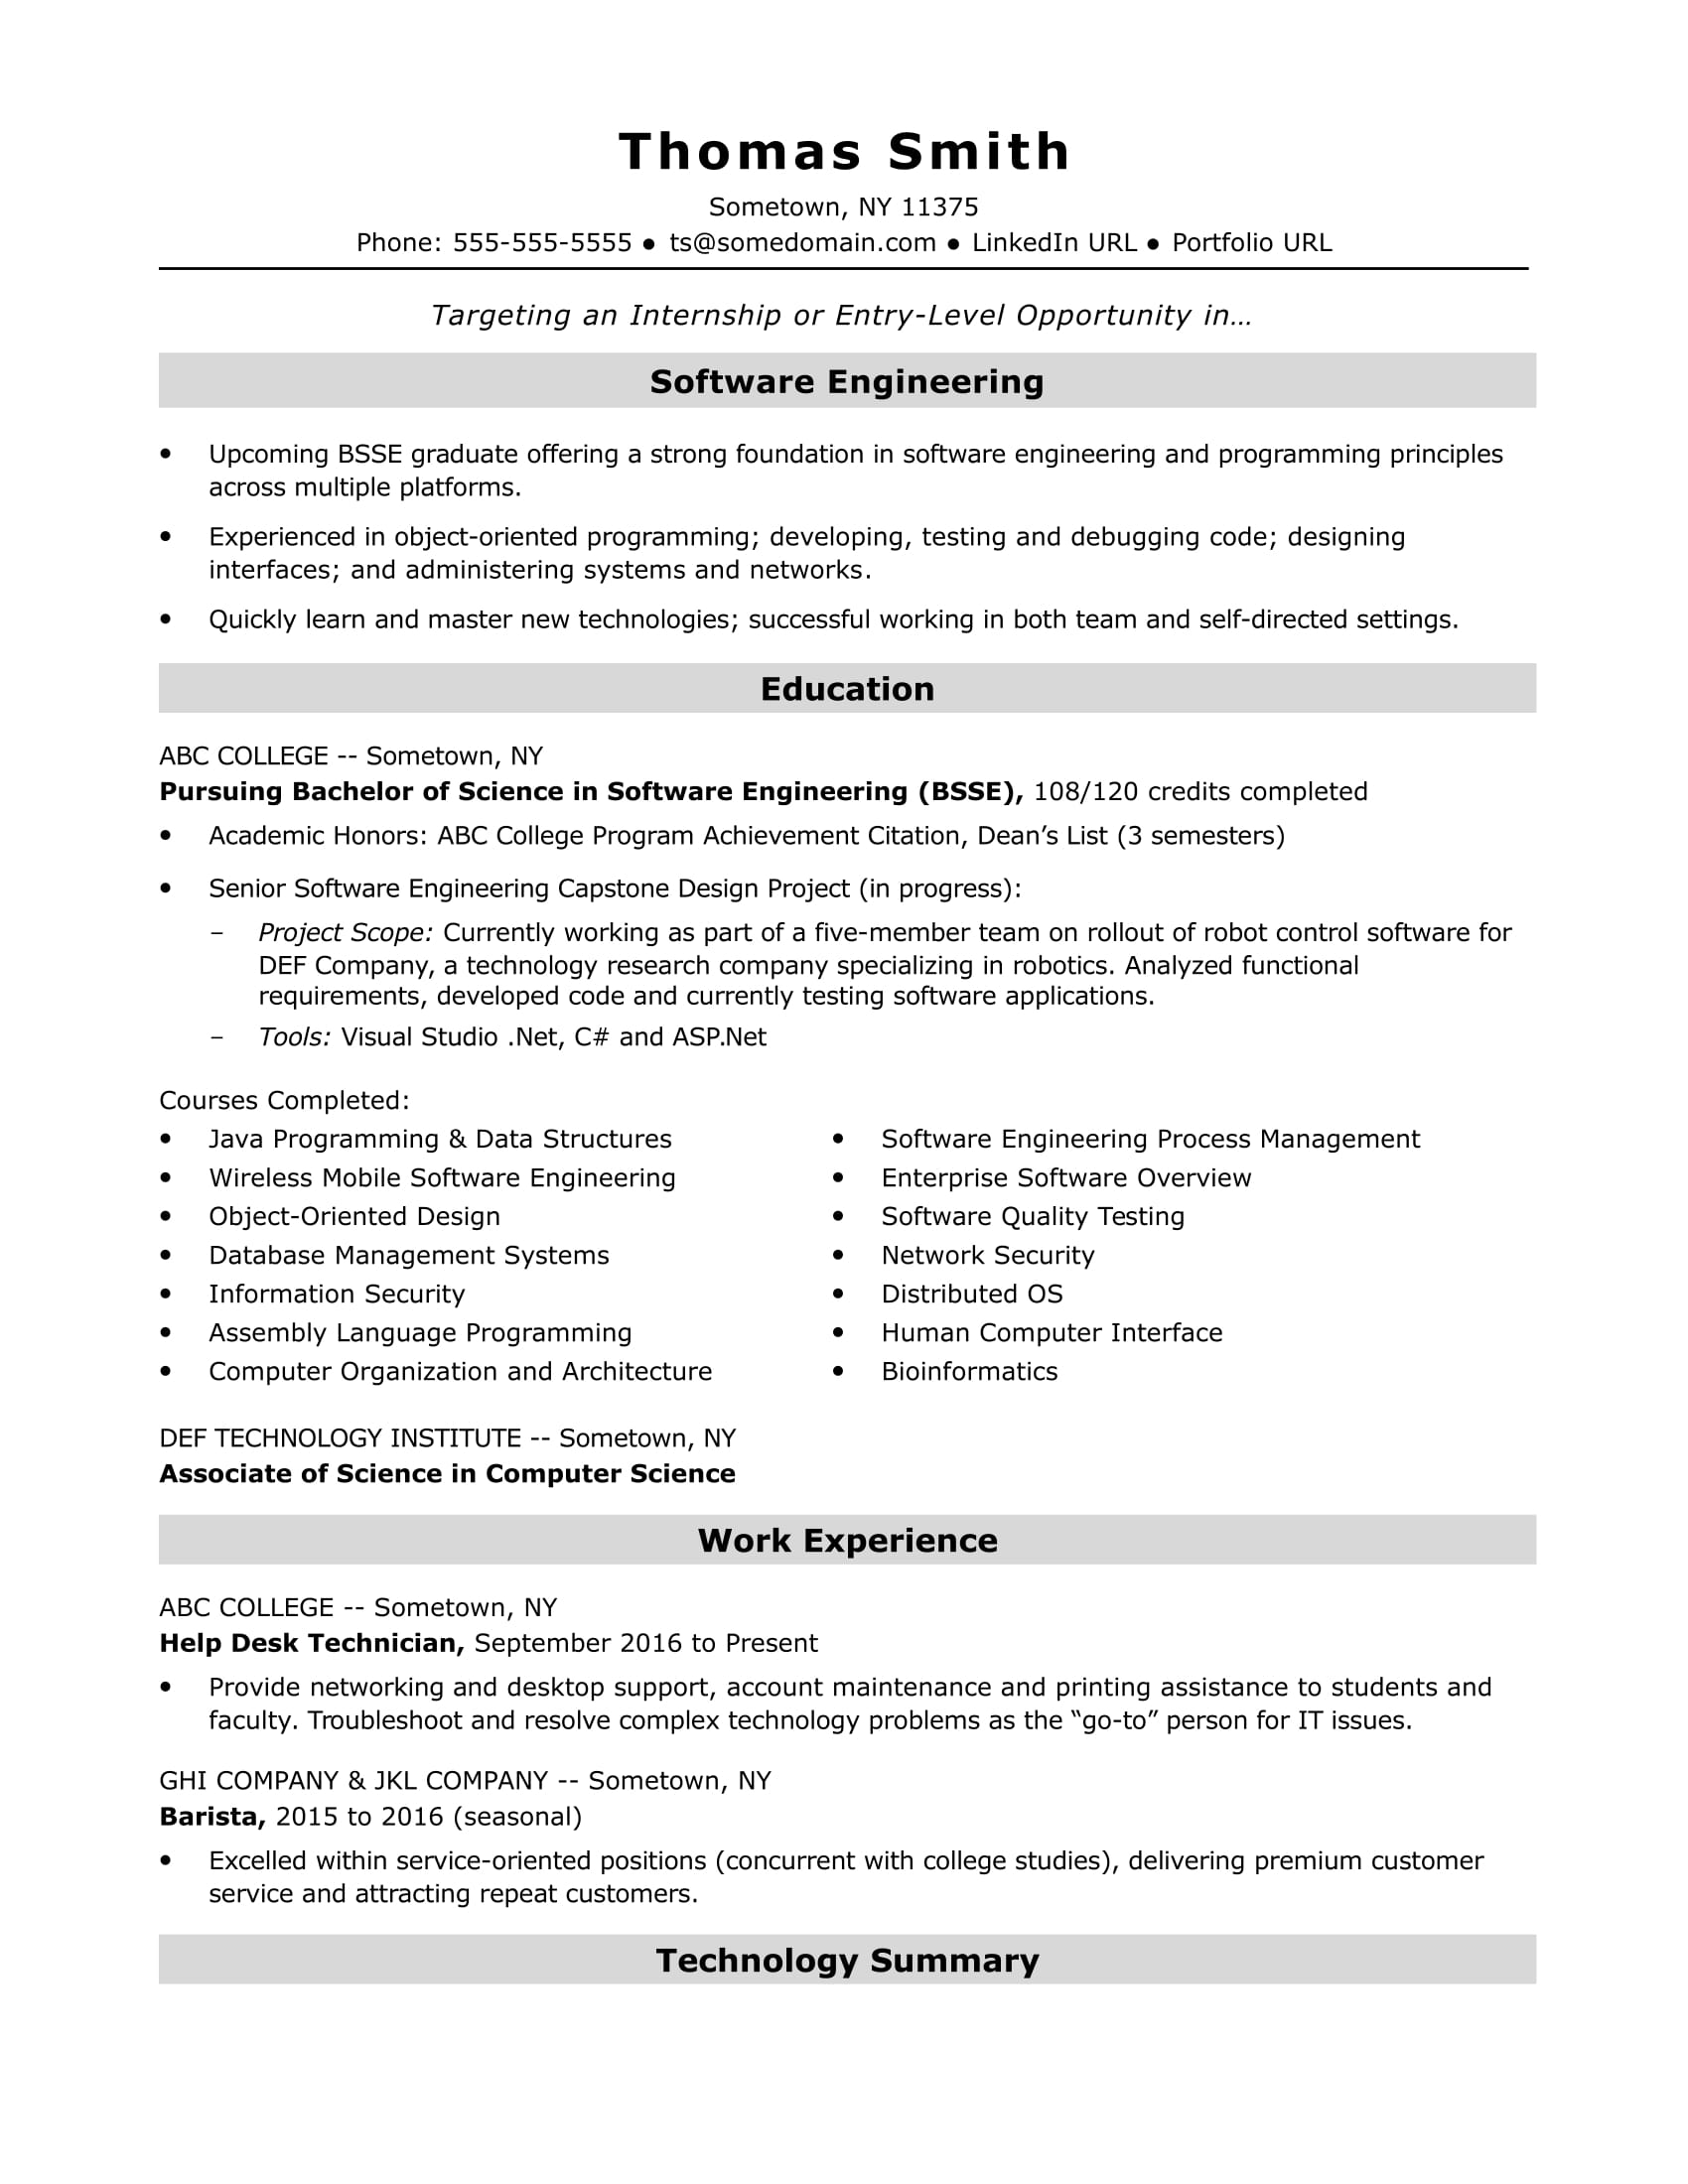 Sample Resume For An Entry Level Software Engineer